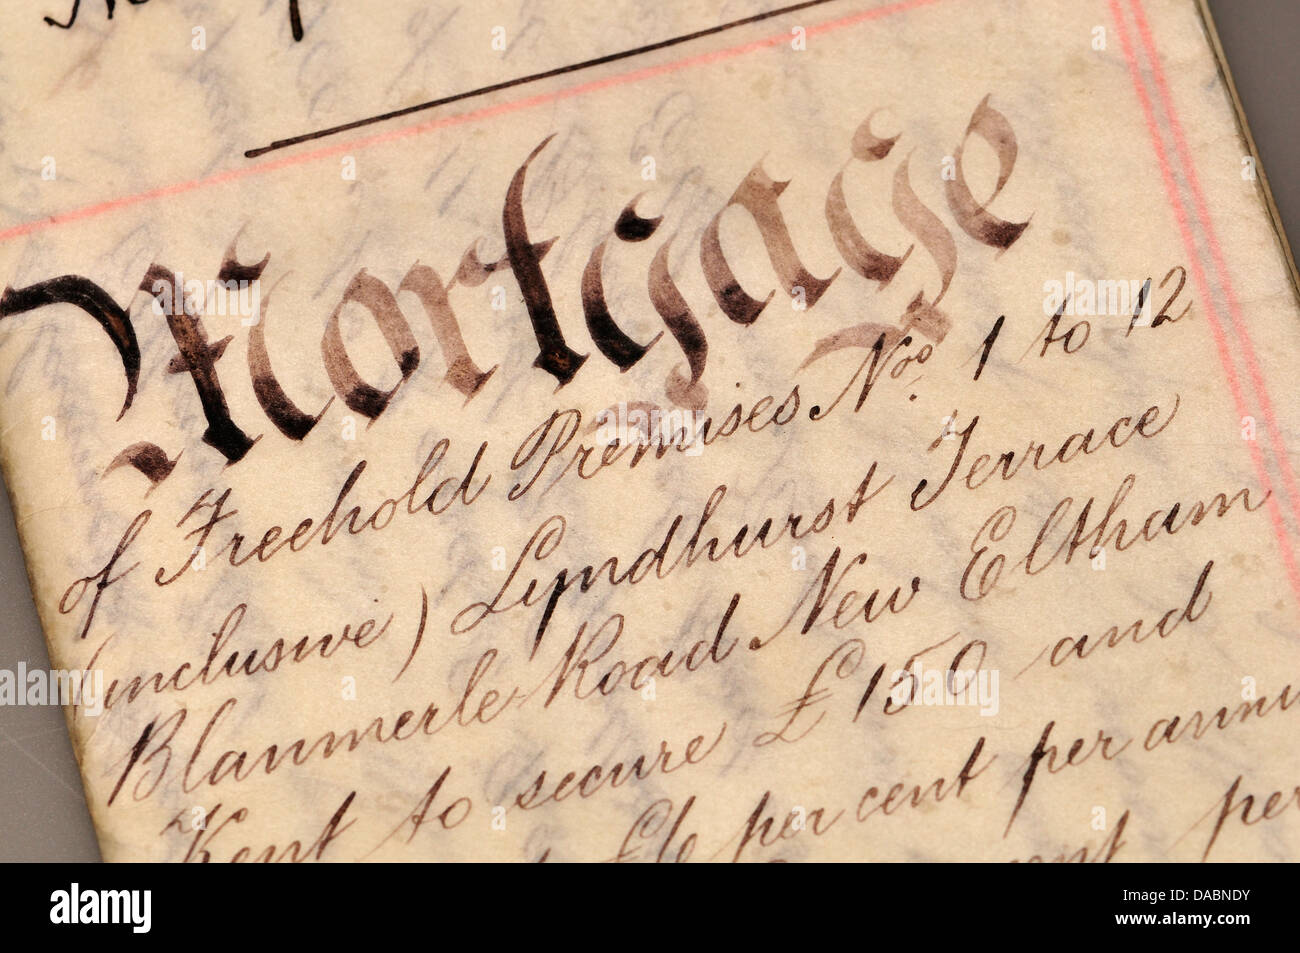 Old Mortgage document (1910) written on vellum - Stock Image